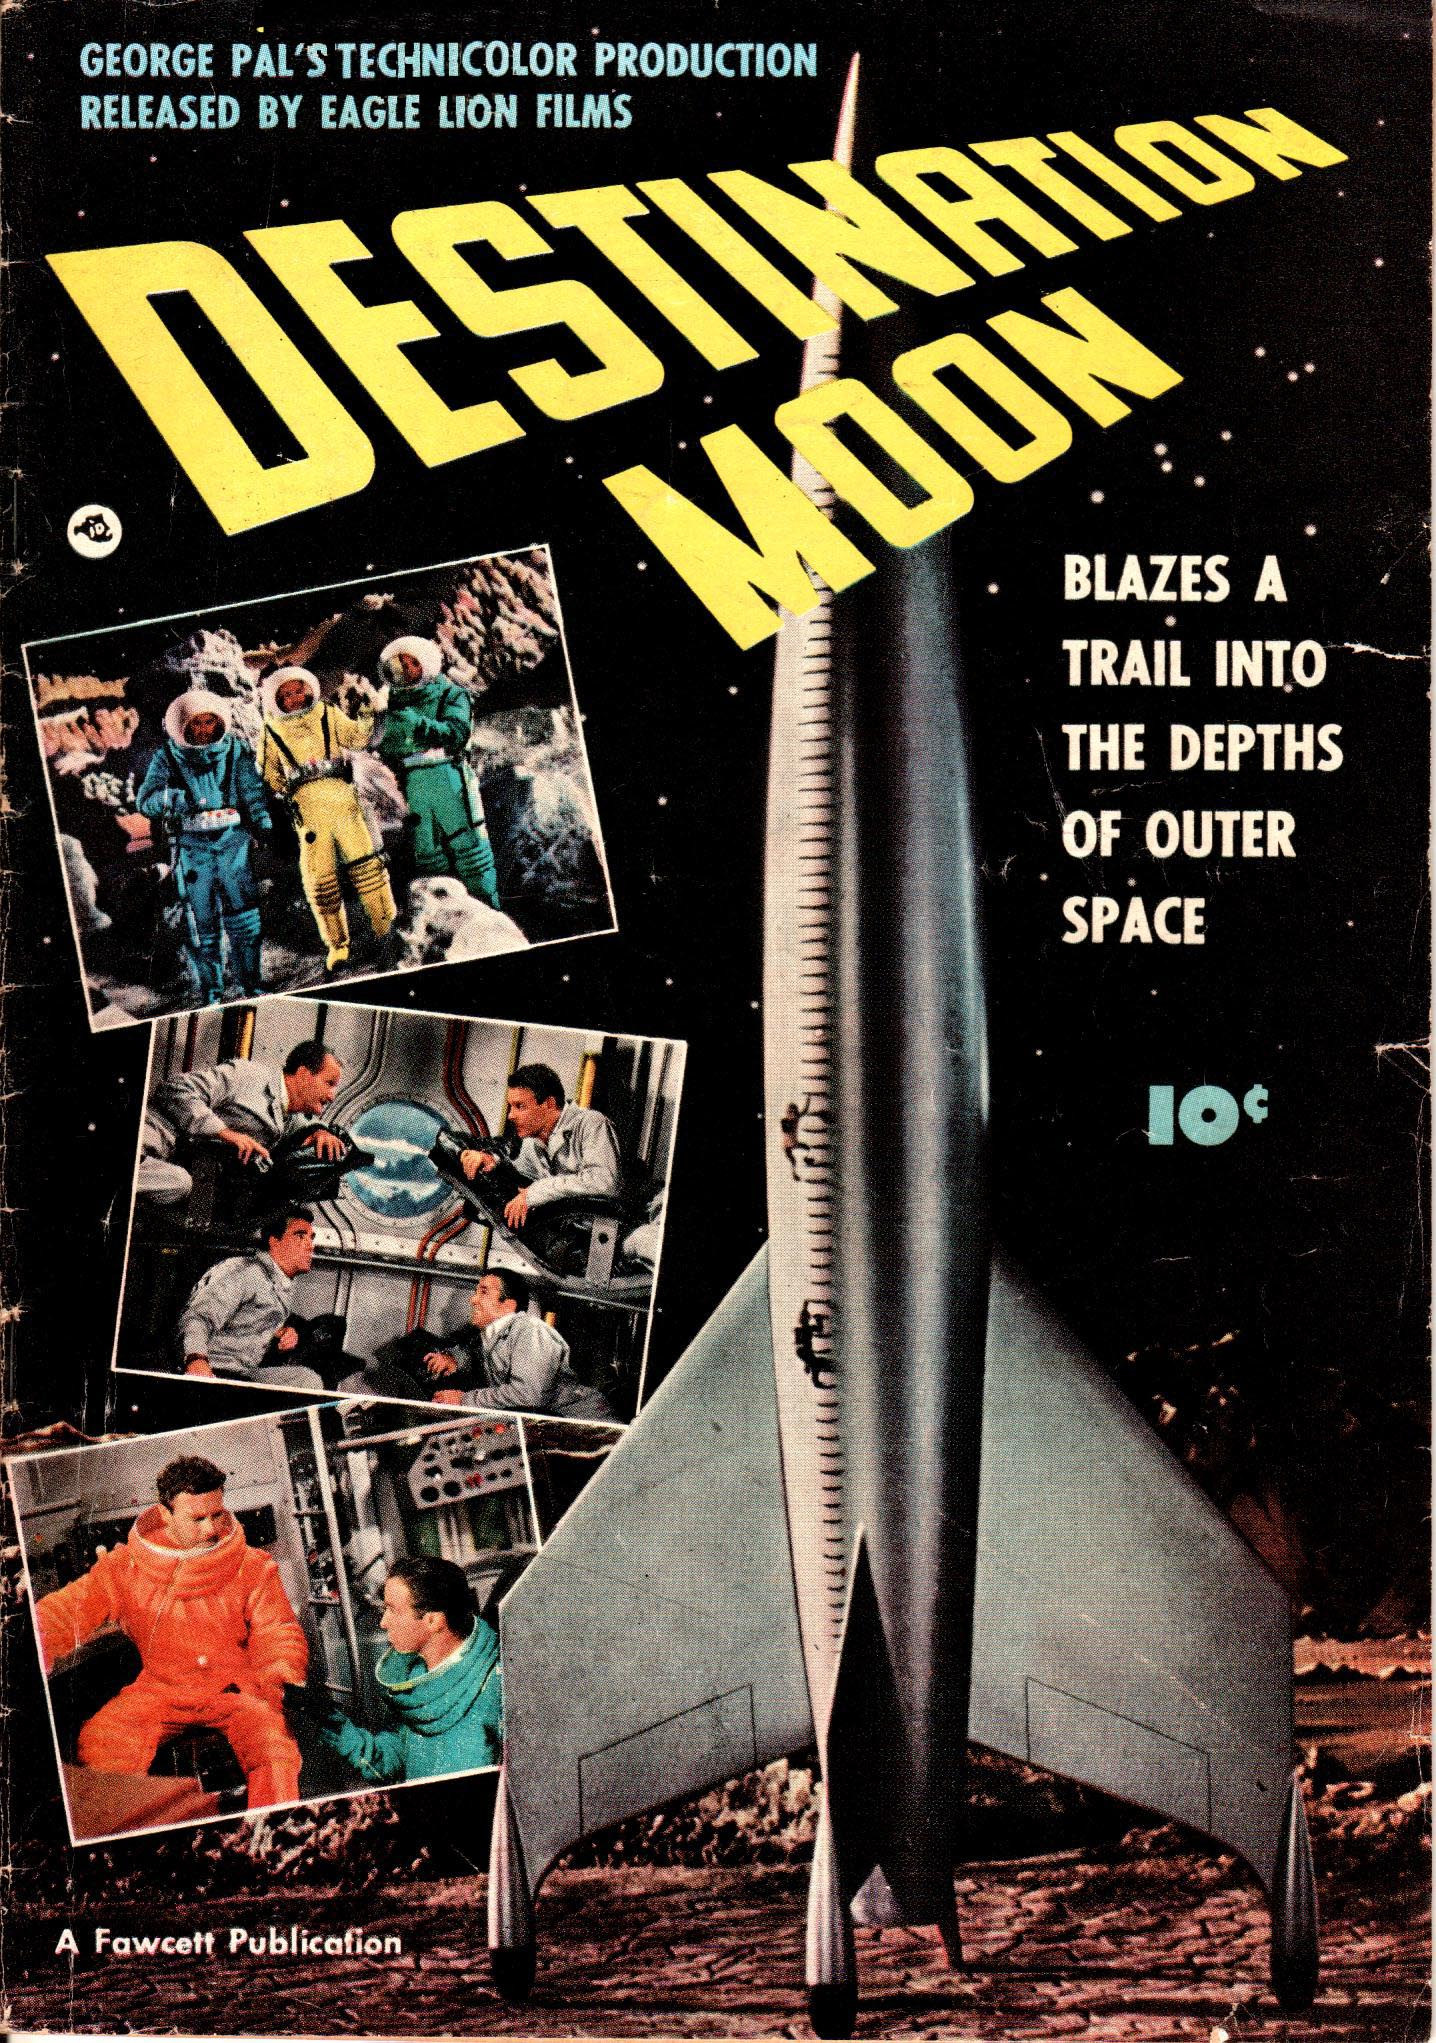 An early science fiction novel that depicted a moon landing.